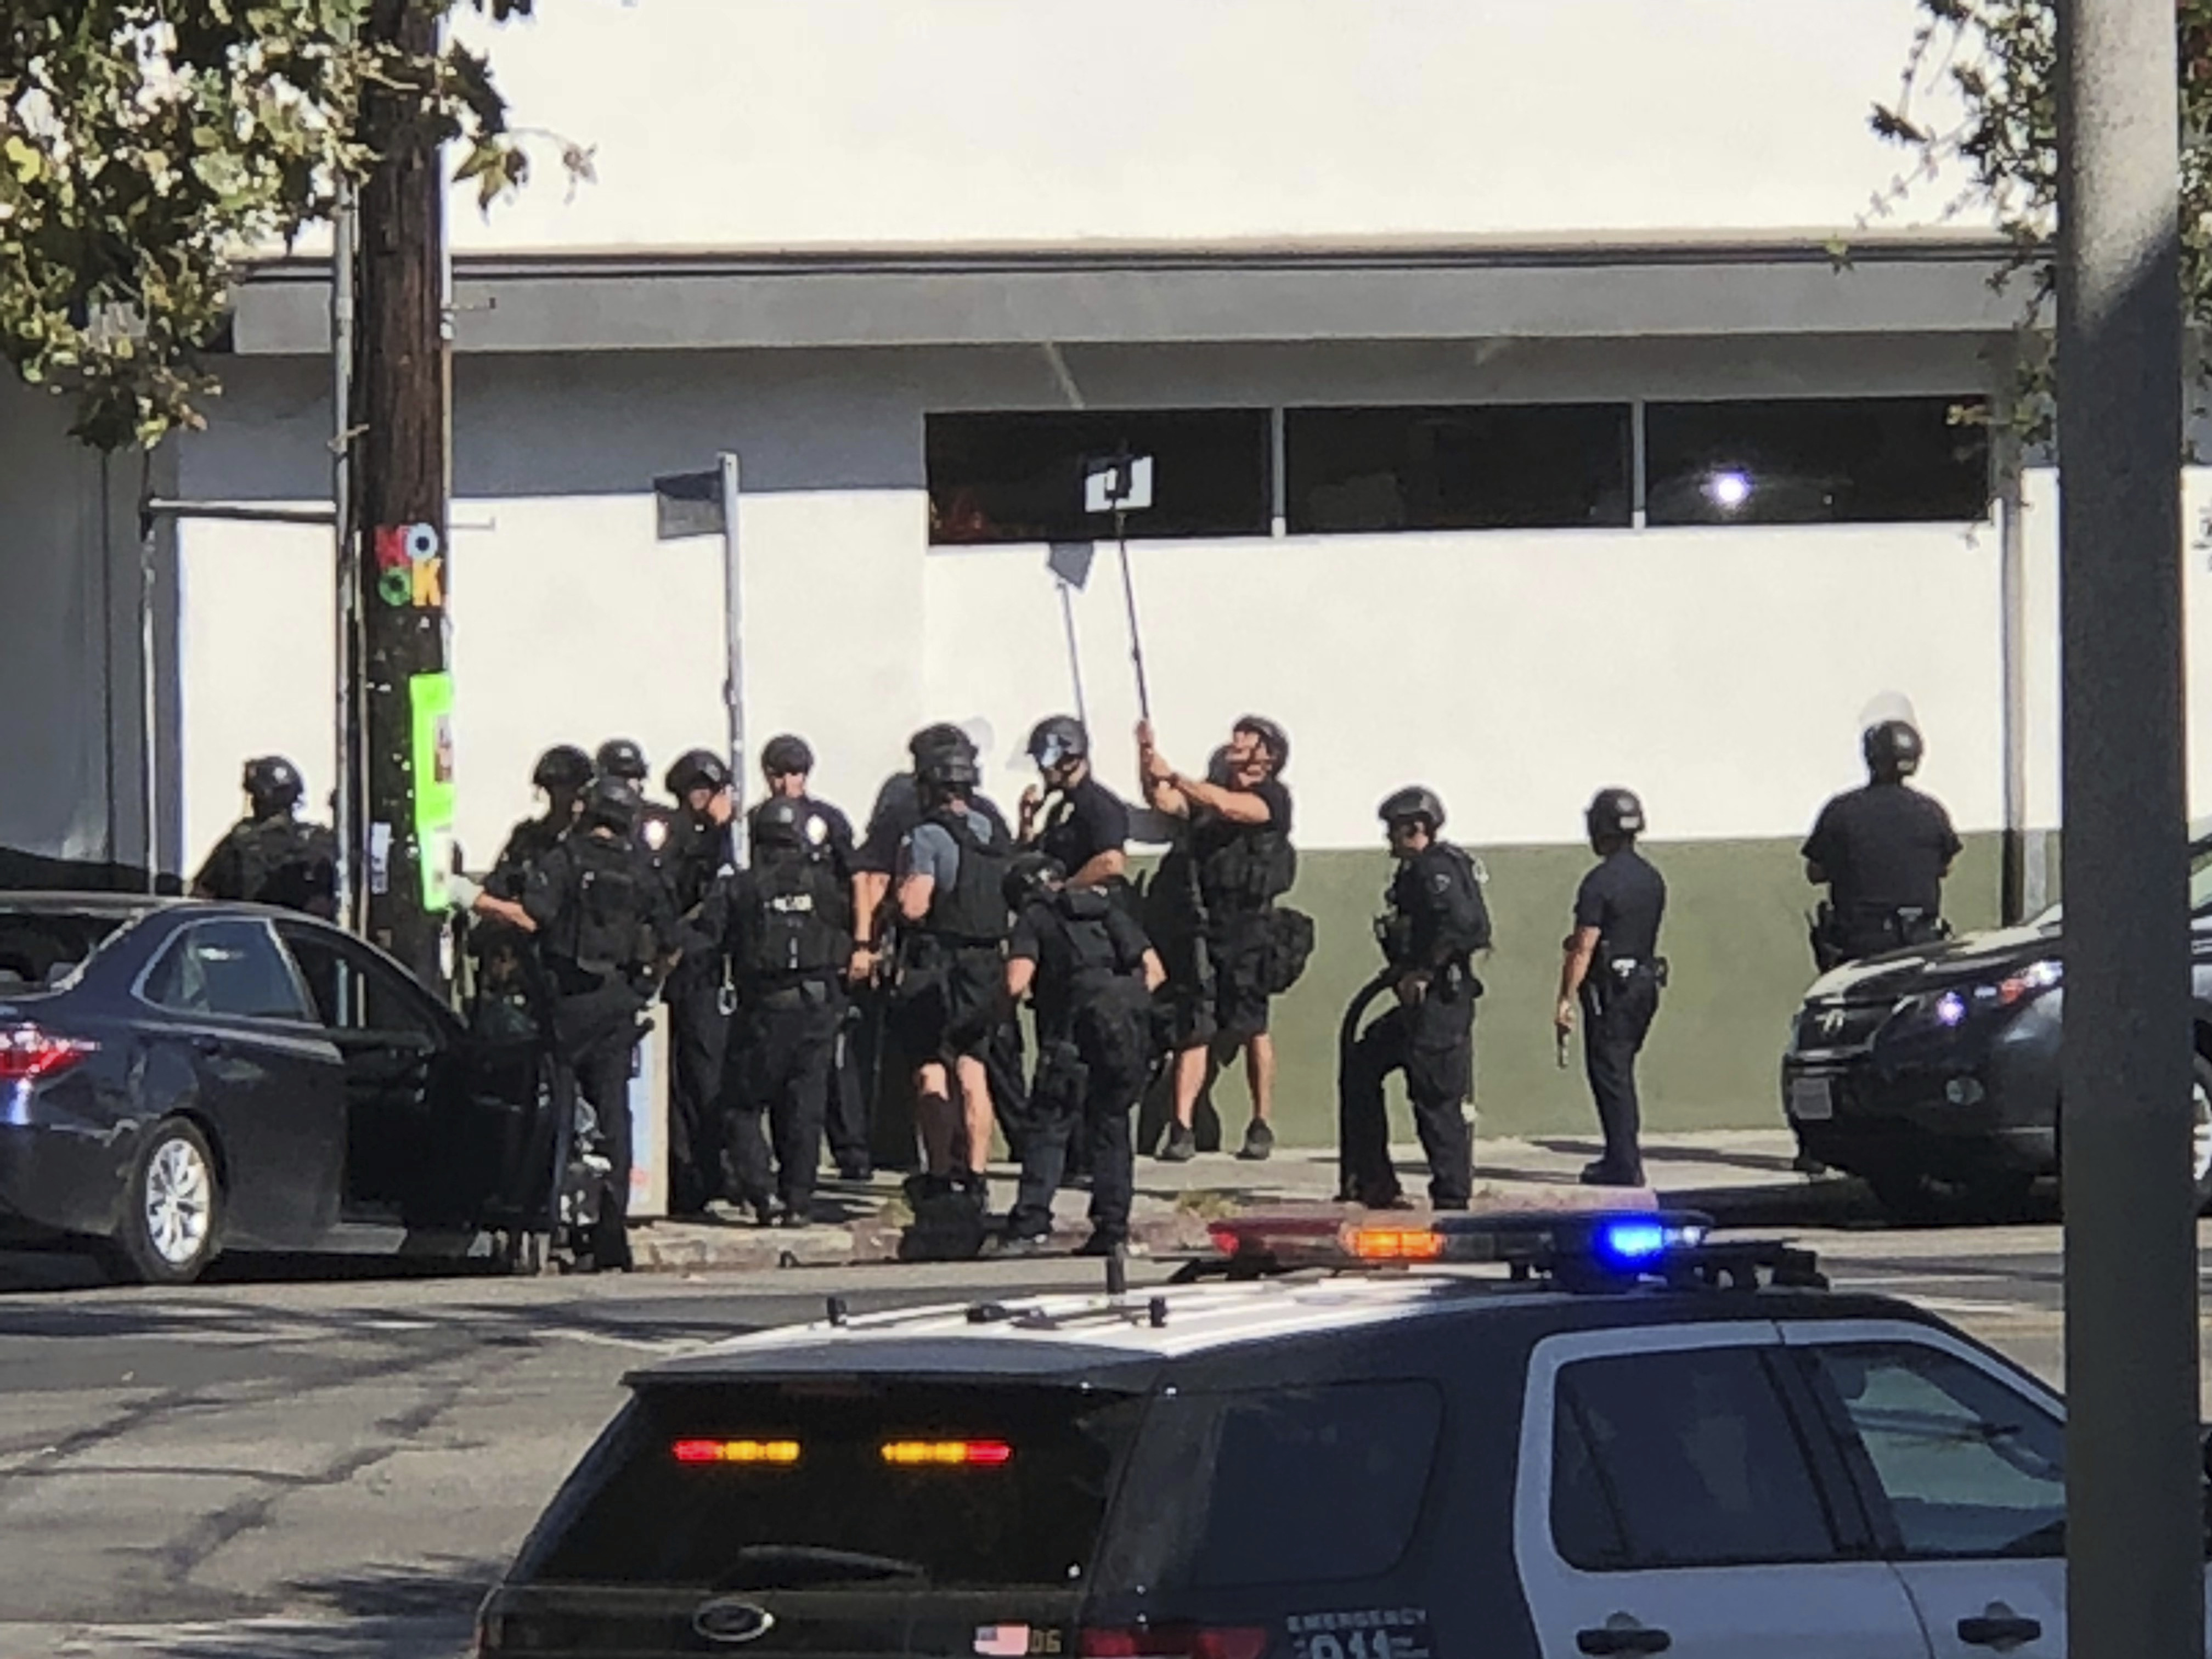 Police ID suspect in deadly barricade situation at Trader Joe's in LA